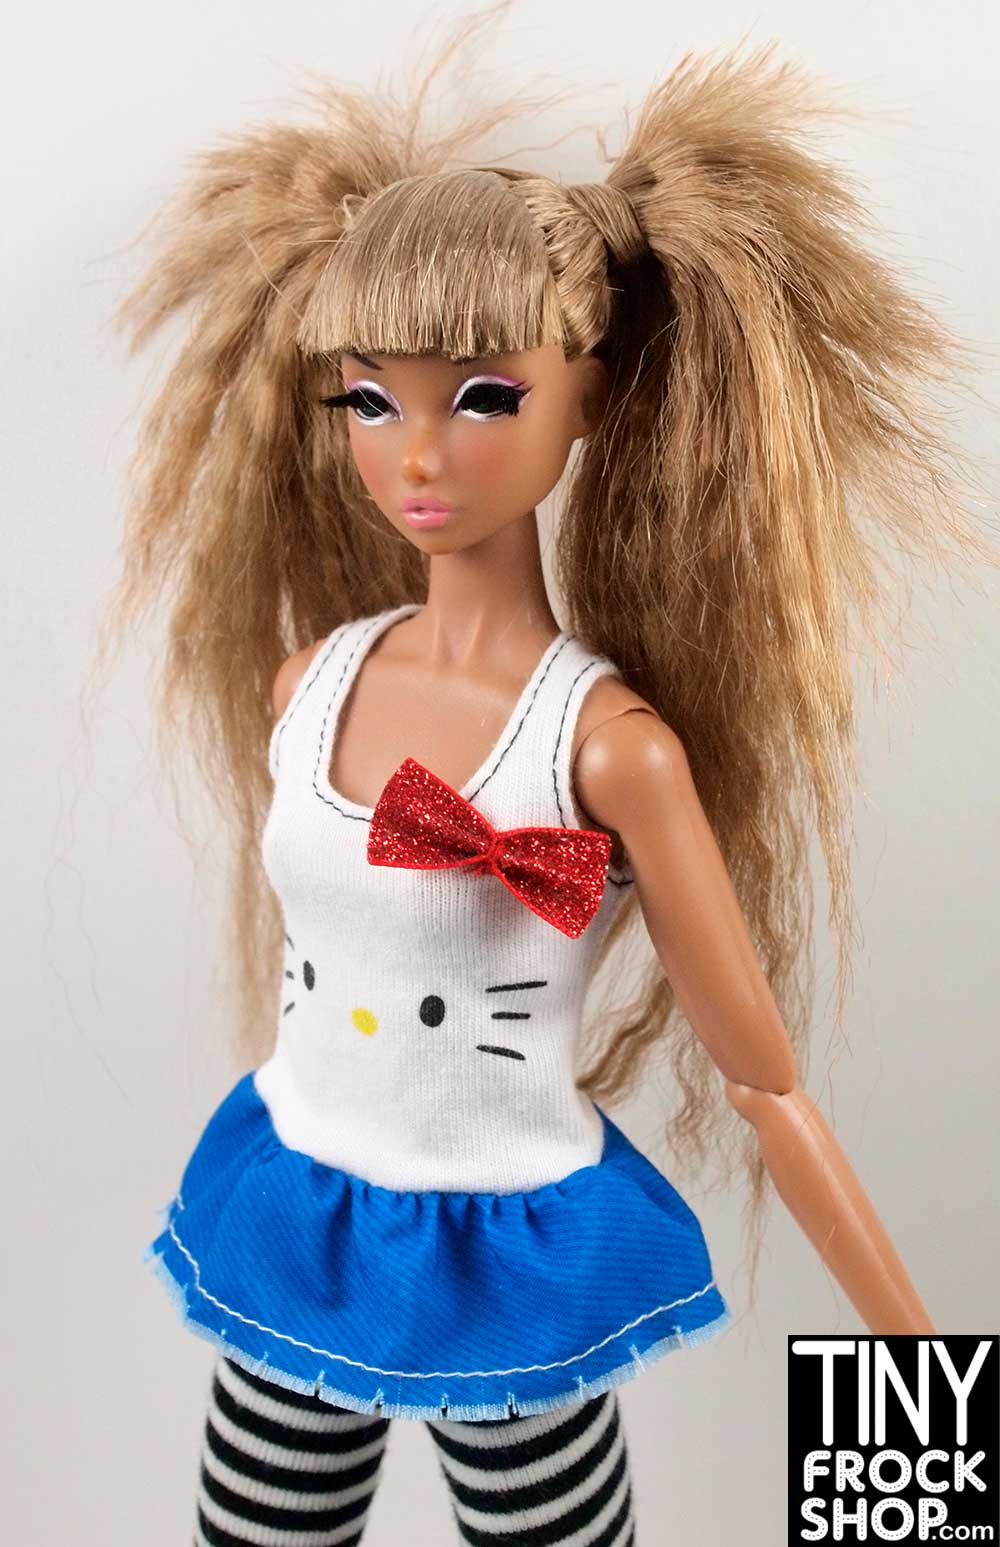 f66dd3137 Tiny Frock Shop Barbie FLP45 Hello Kitty Red White and Blue Top - NIB